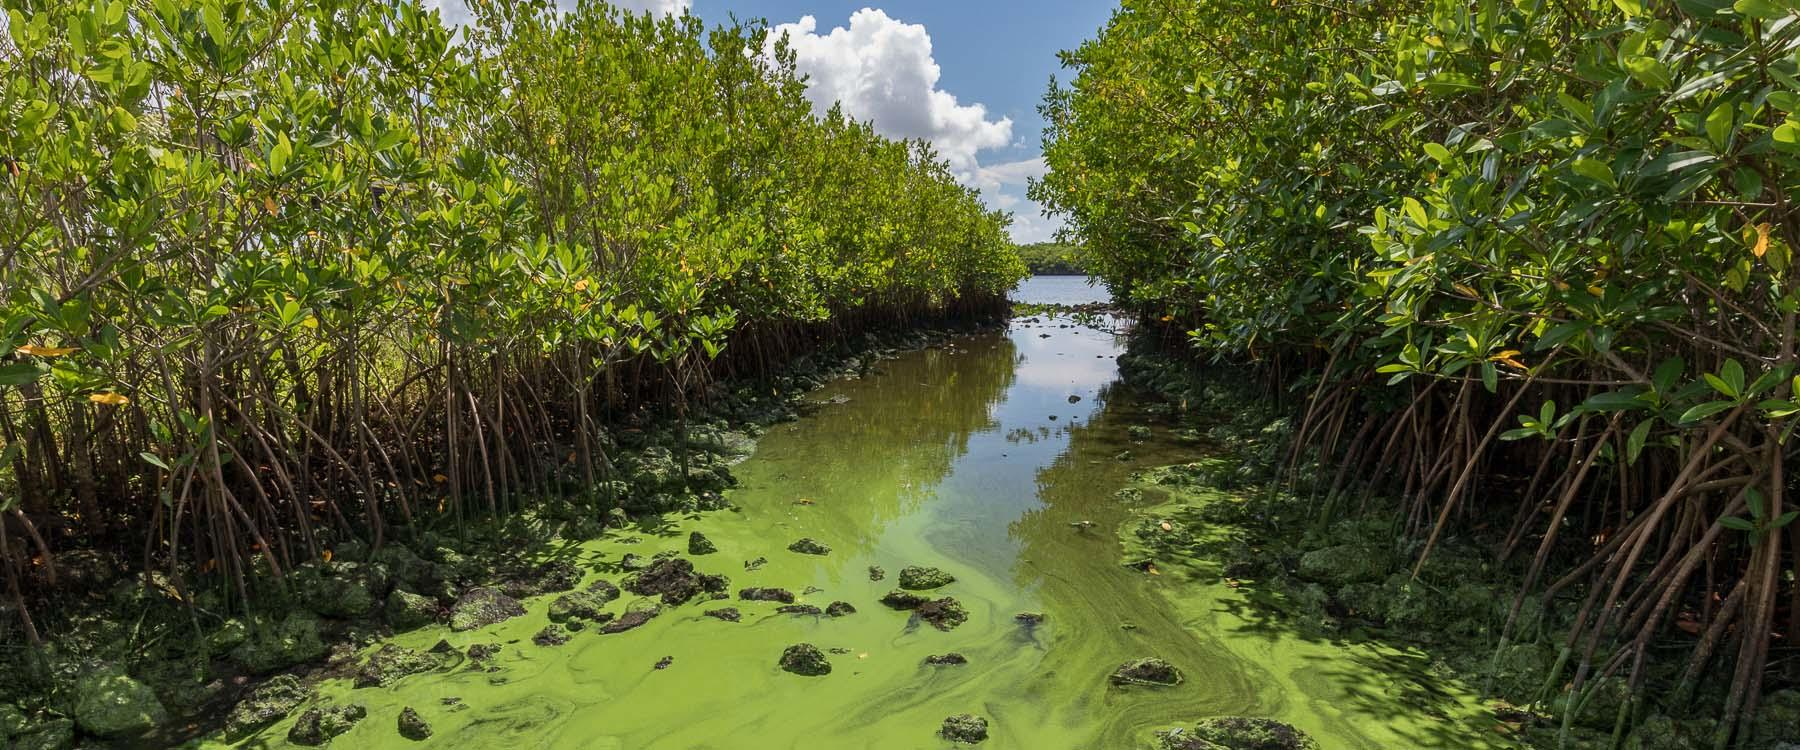 Toxic blue-green algae in Southeast Florida